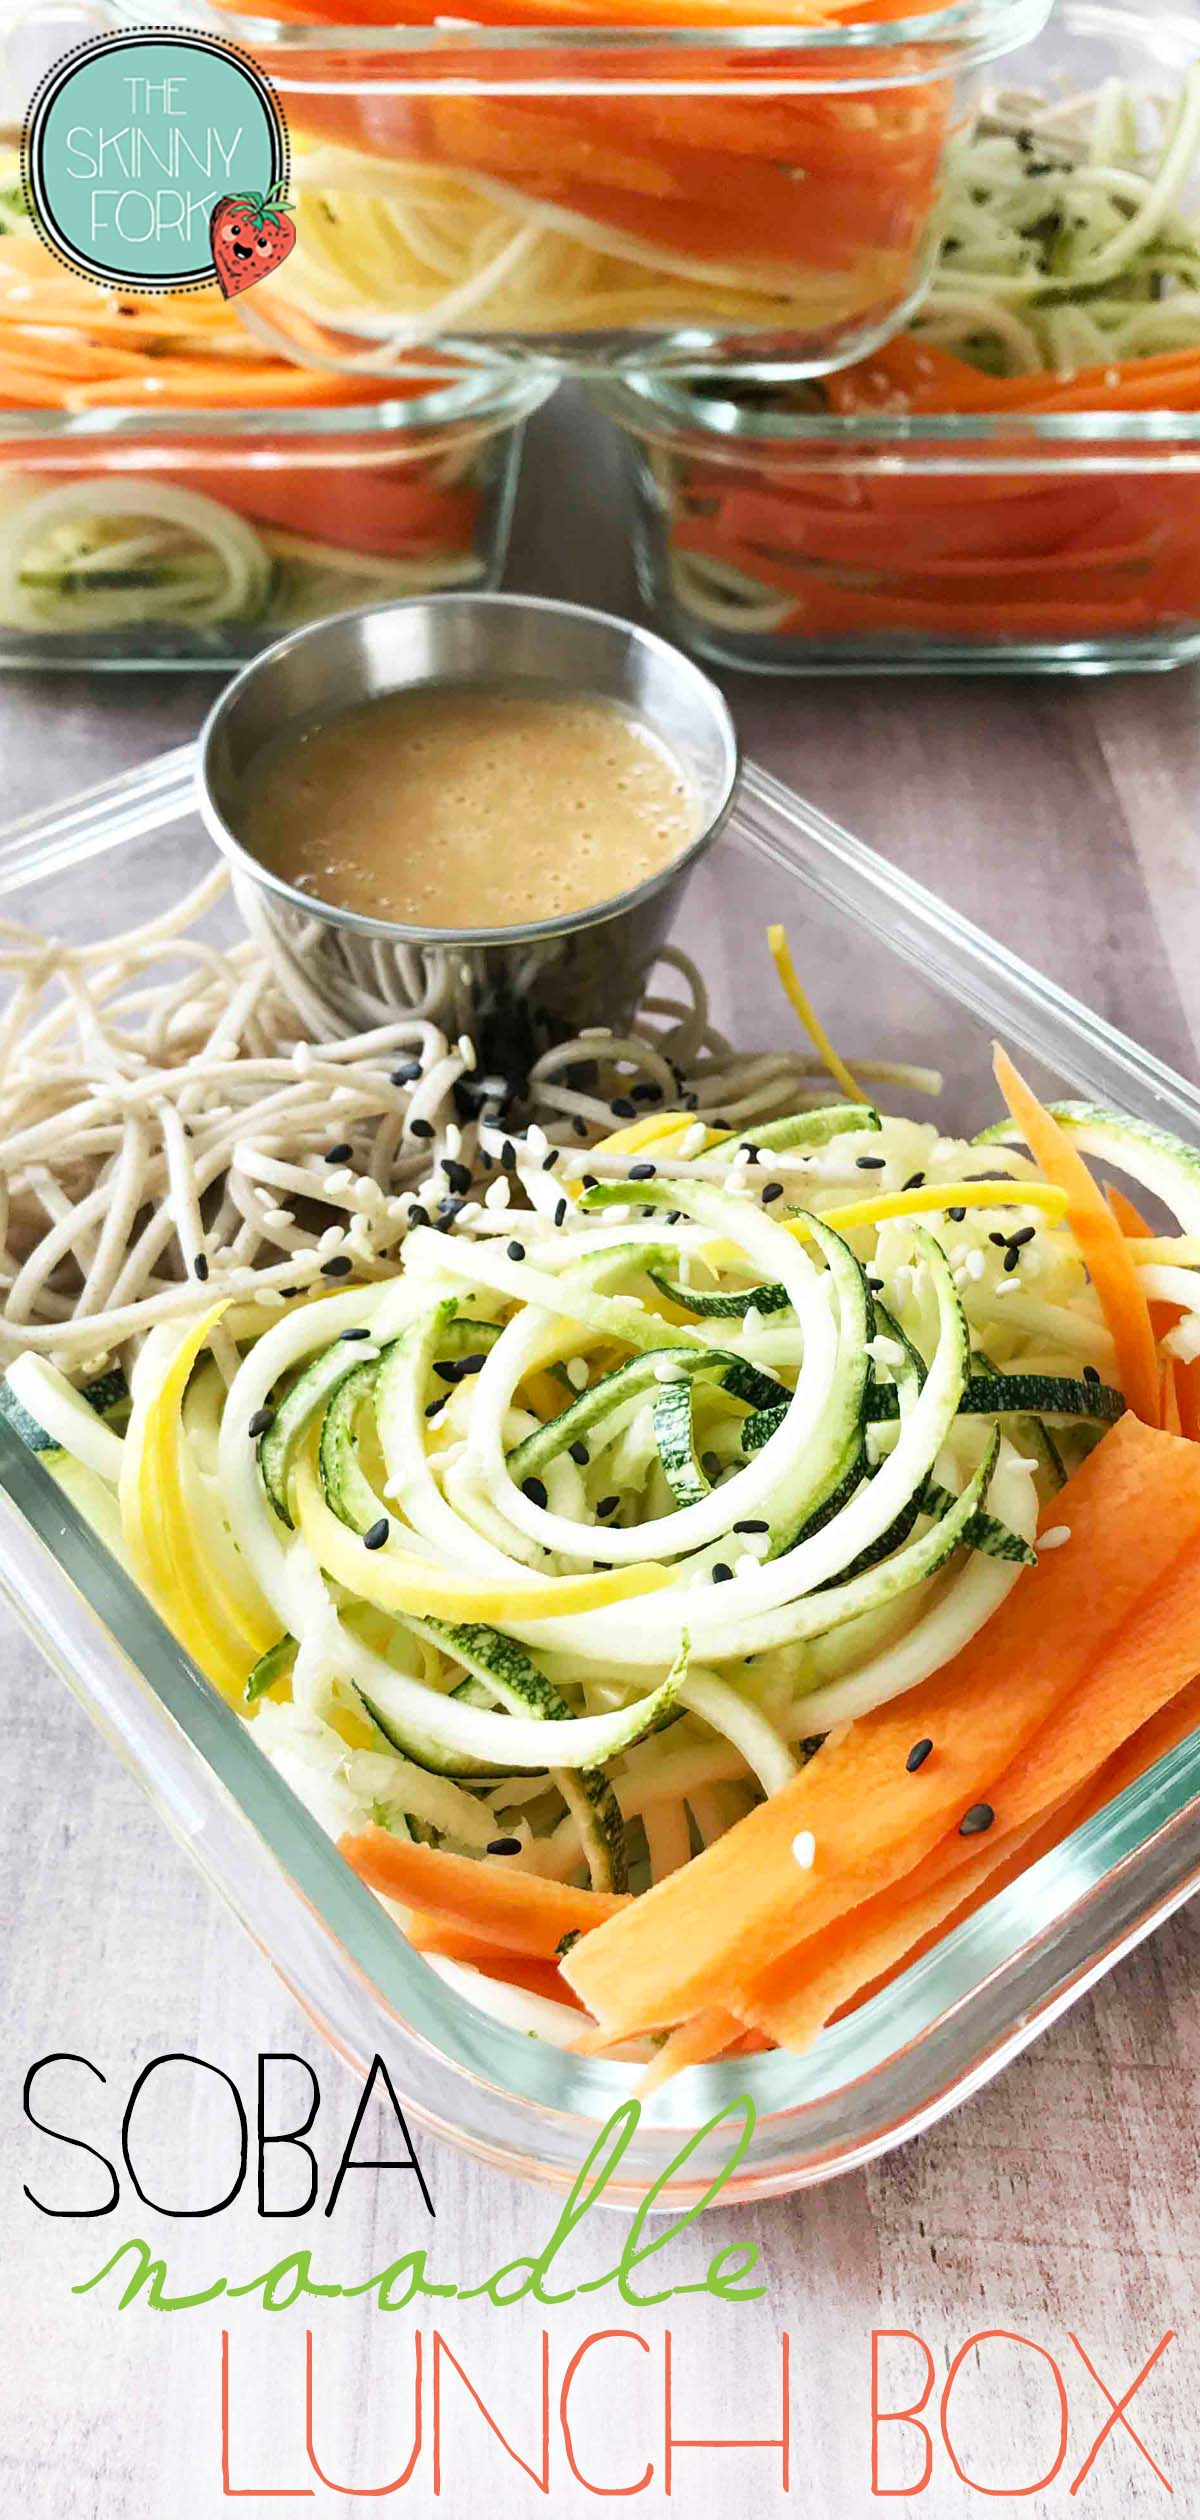 Soba Noodle Lunch Box